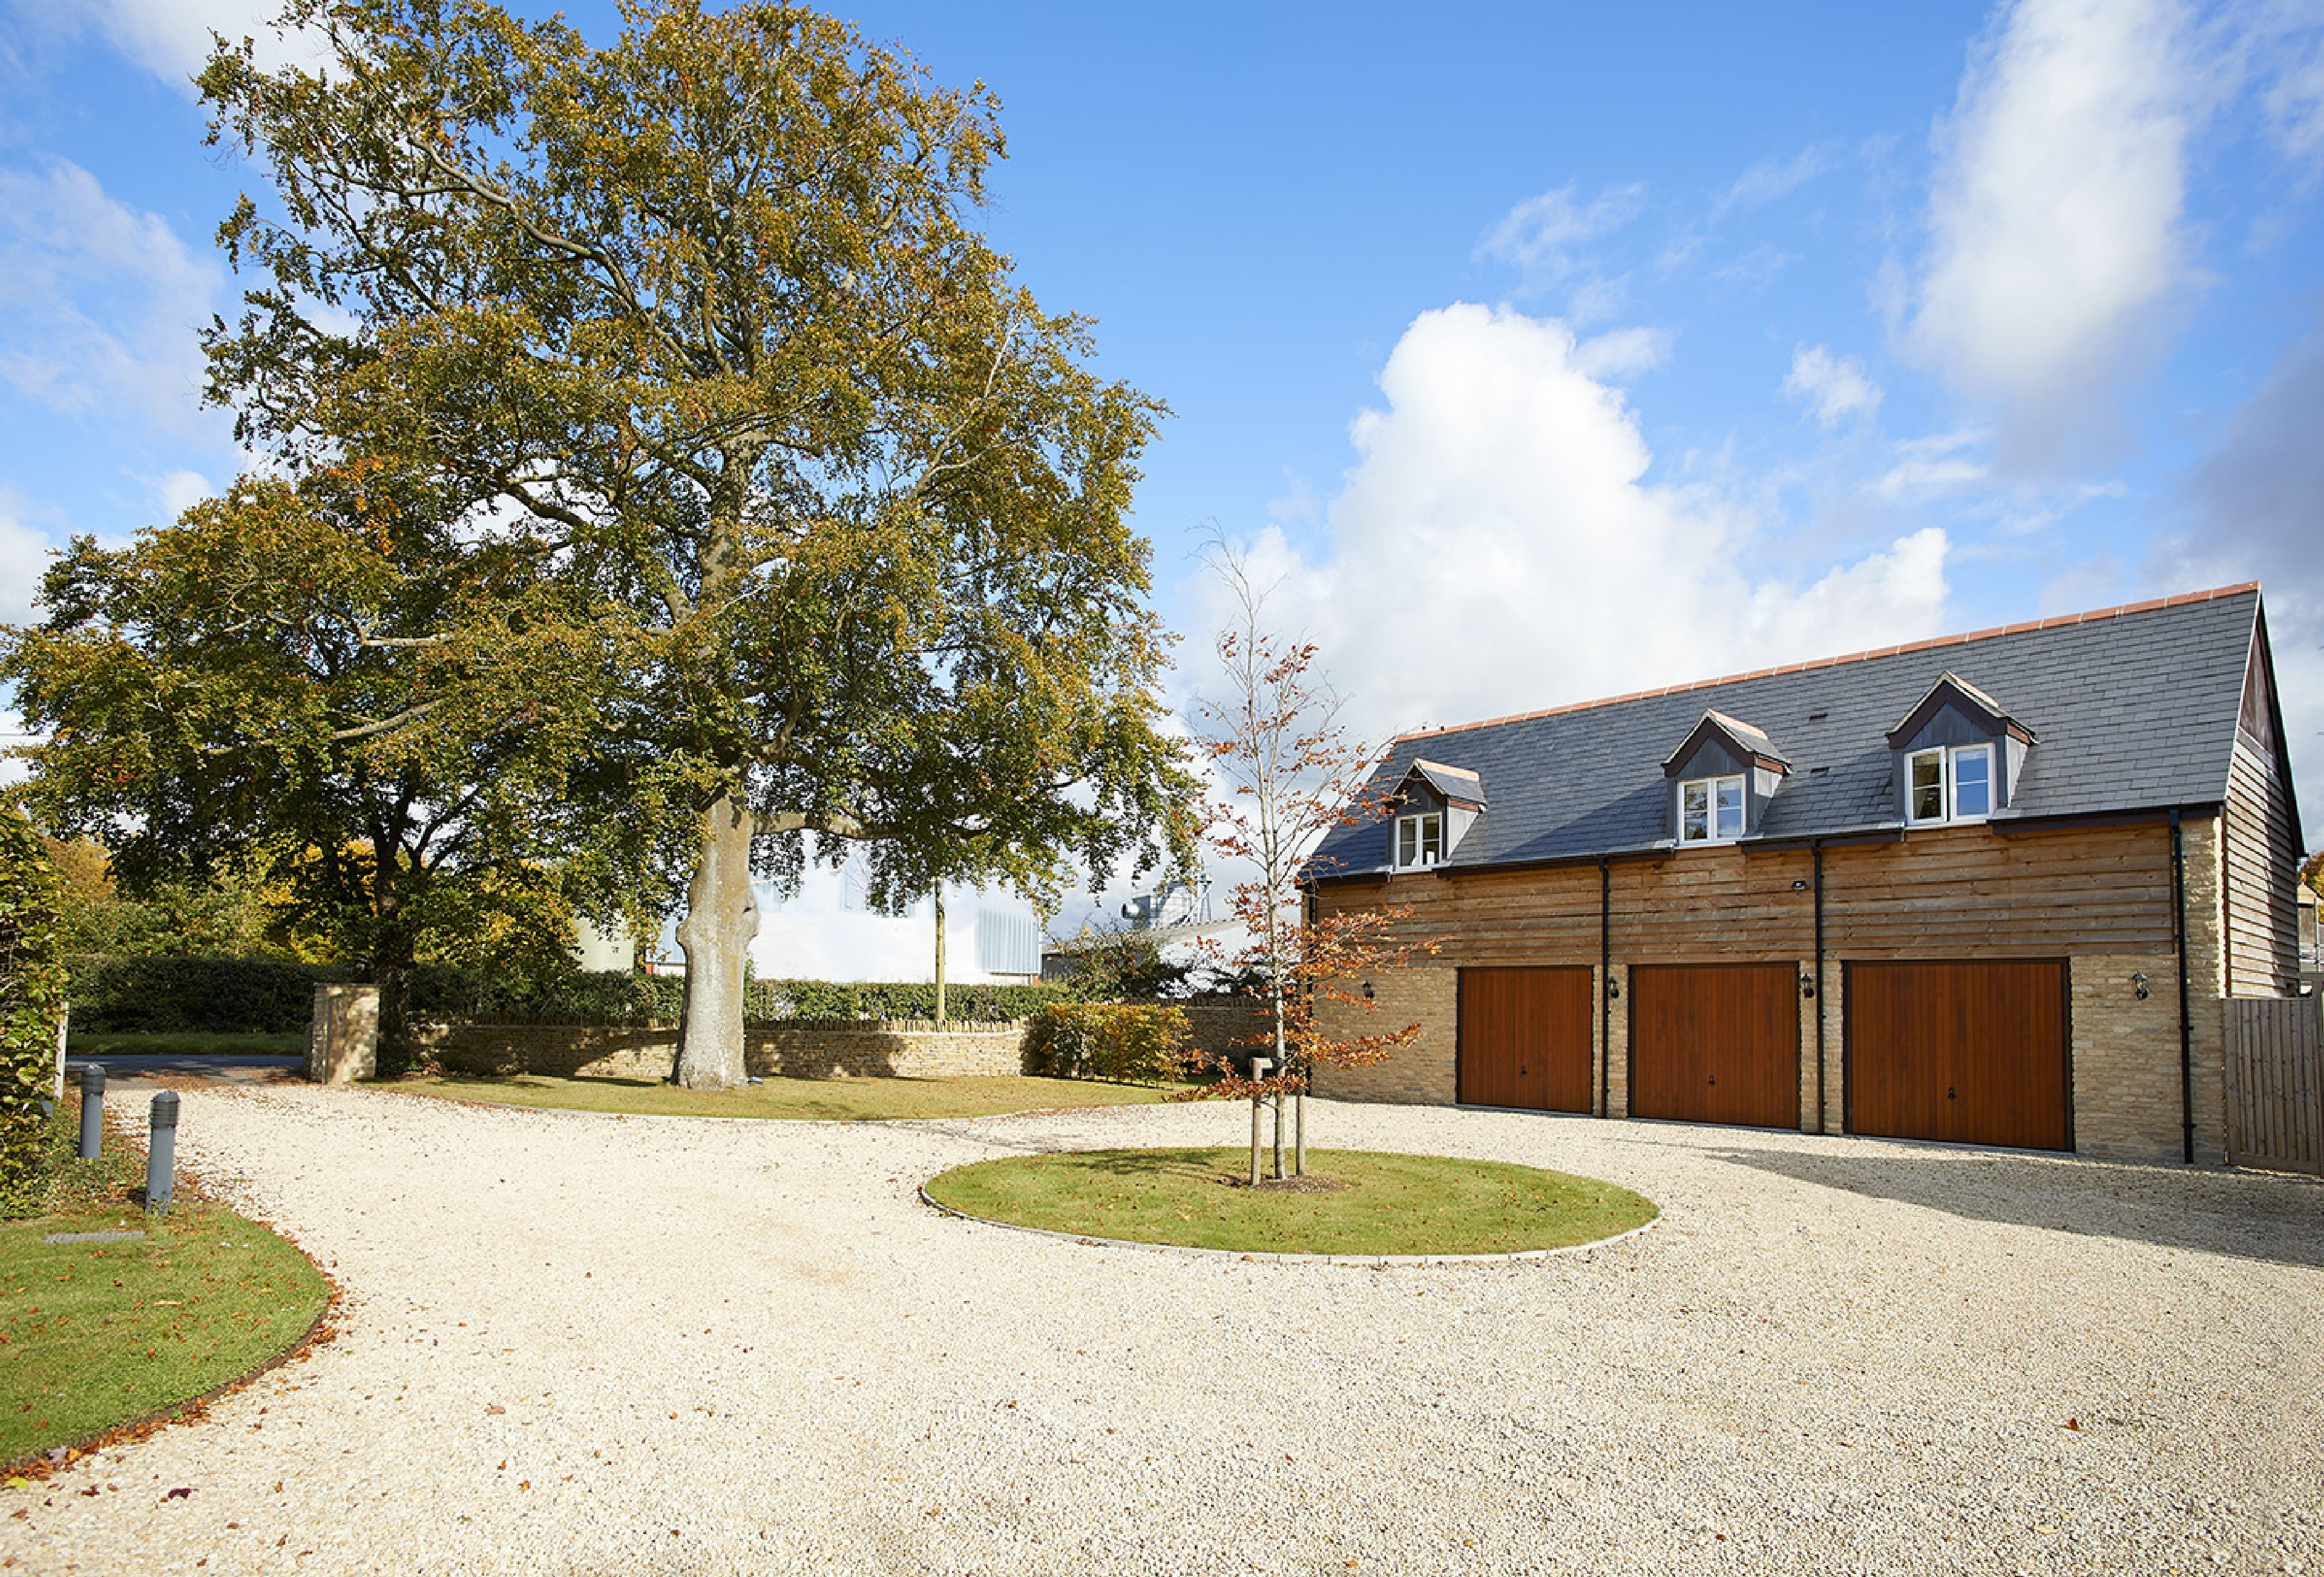 cottage wyevalleyholidays walford summer valley wye holidays img herefordshire welcome to co views coach uk the house